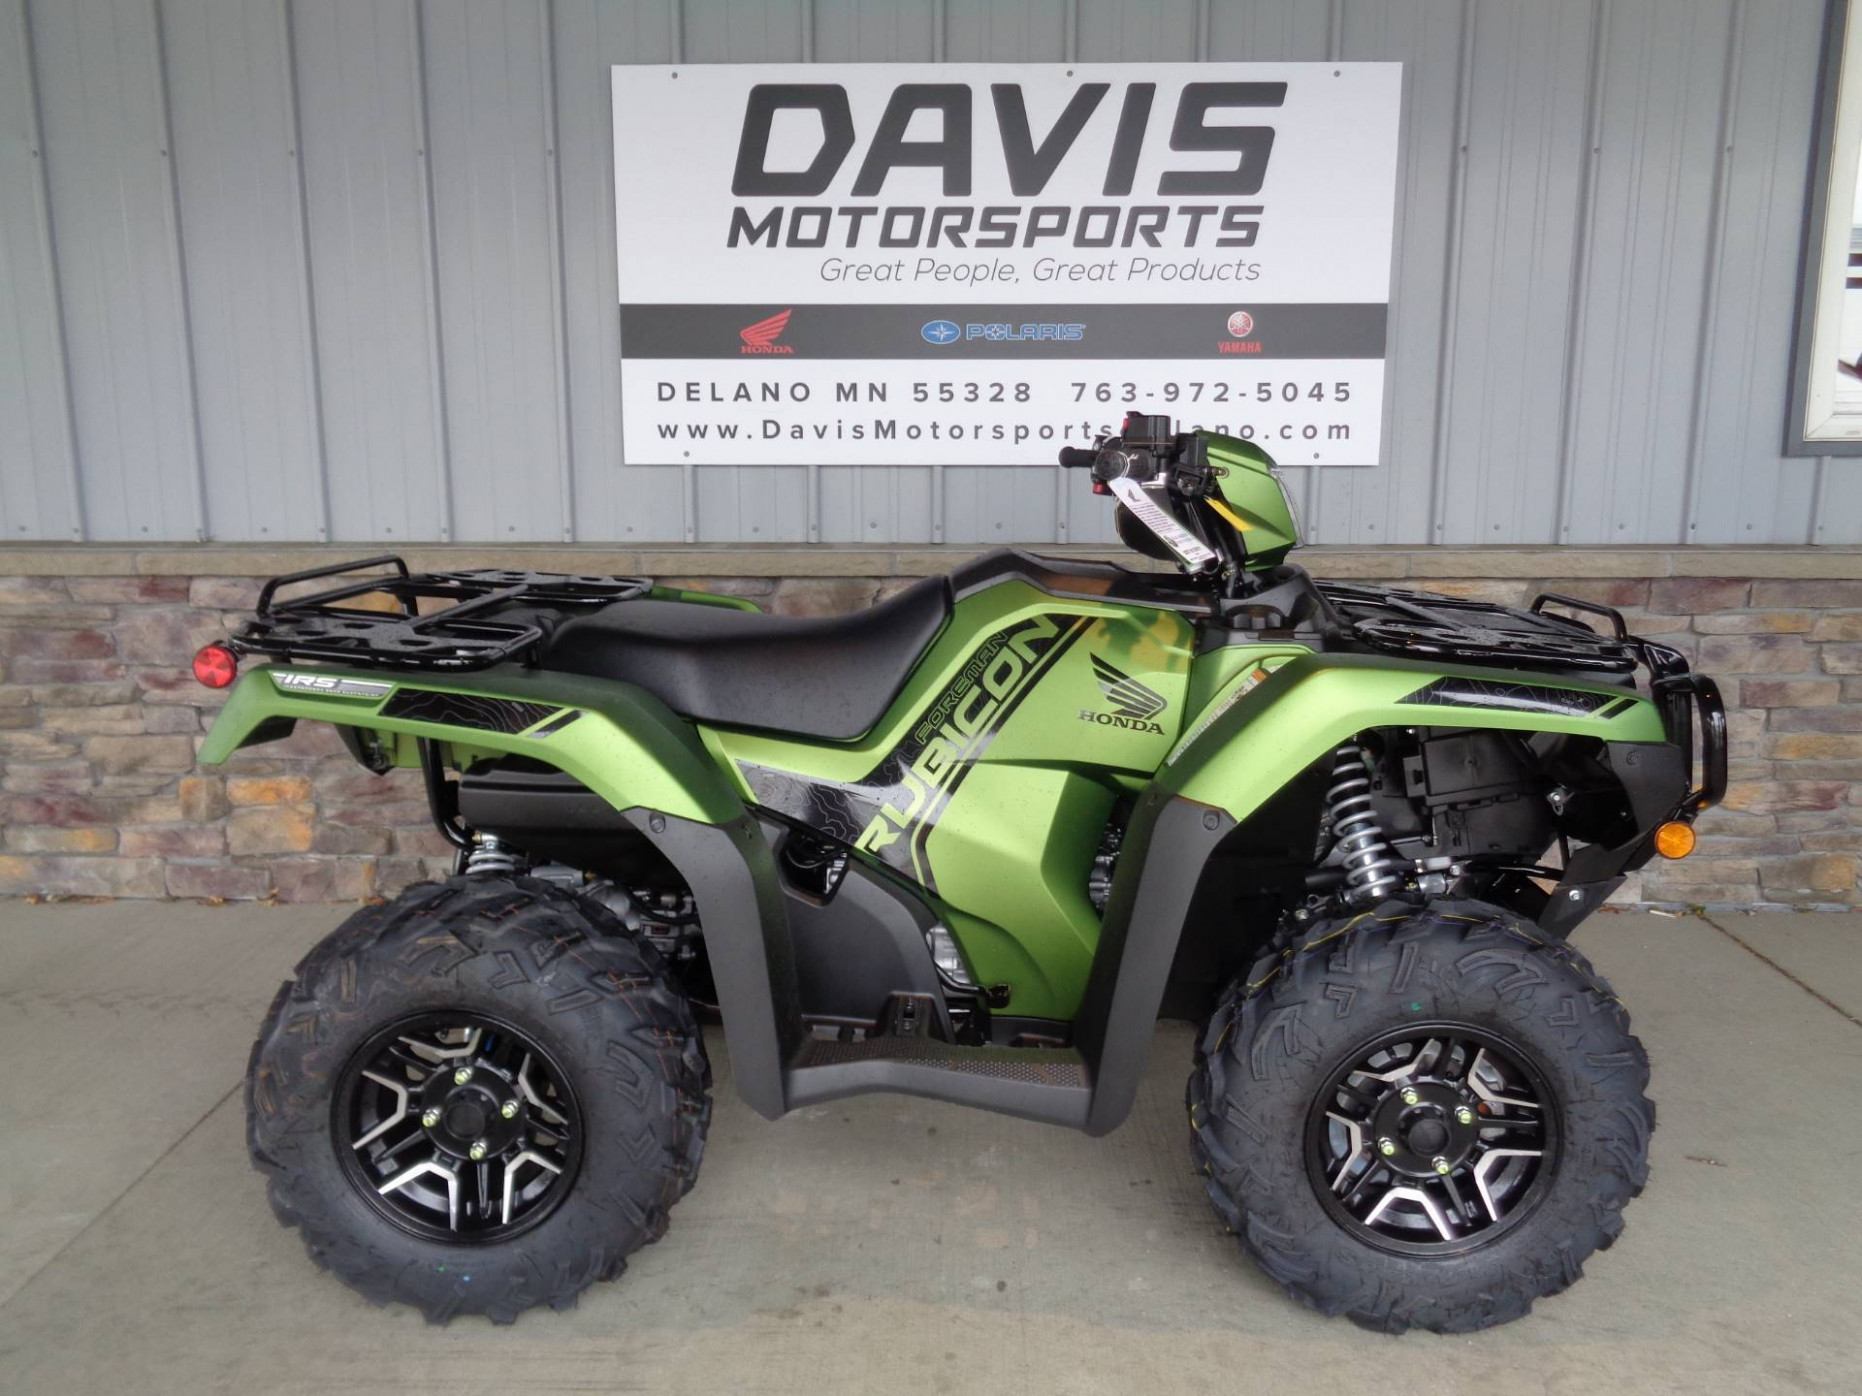 7 Honda Fourtrax Foreman Rubicon 7x7 Automatic Dct Eps Deluxe For Sale  in Delano, MN - ATV Trader - 2020 honda foreman 500